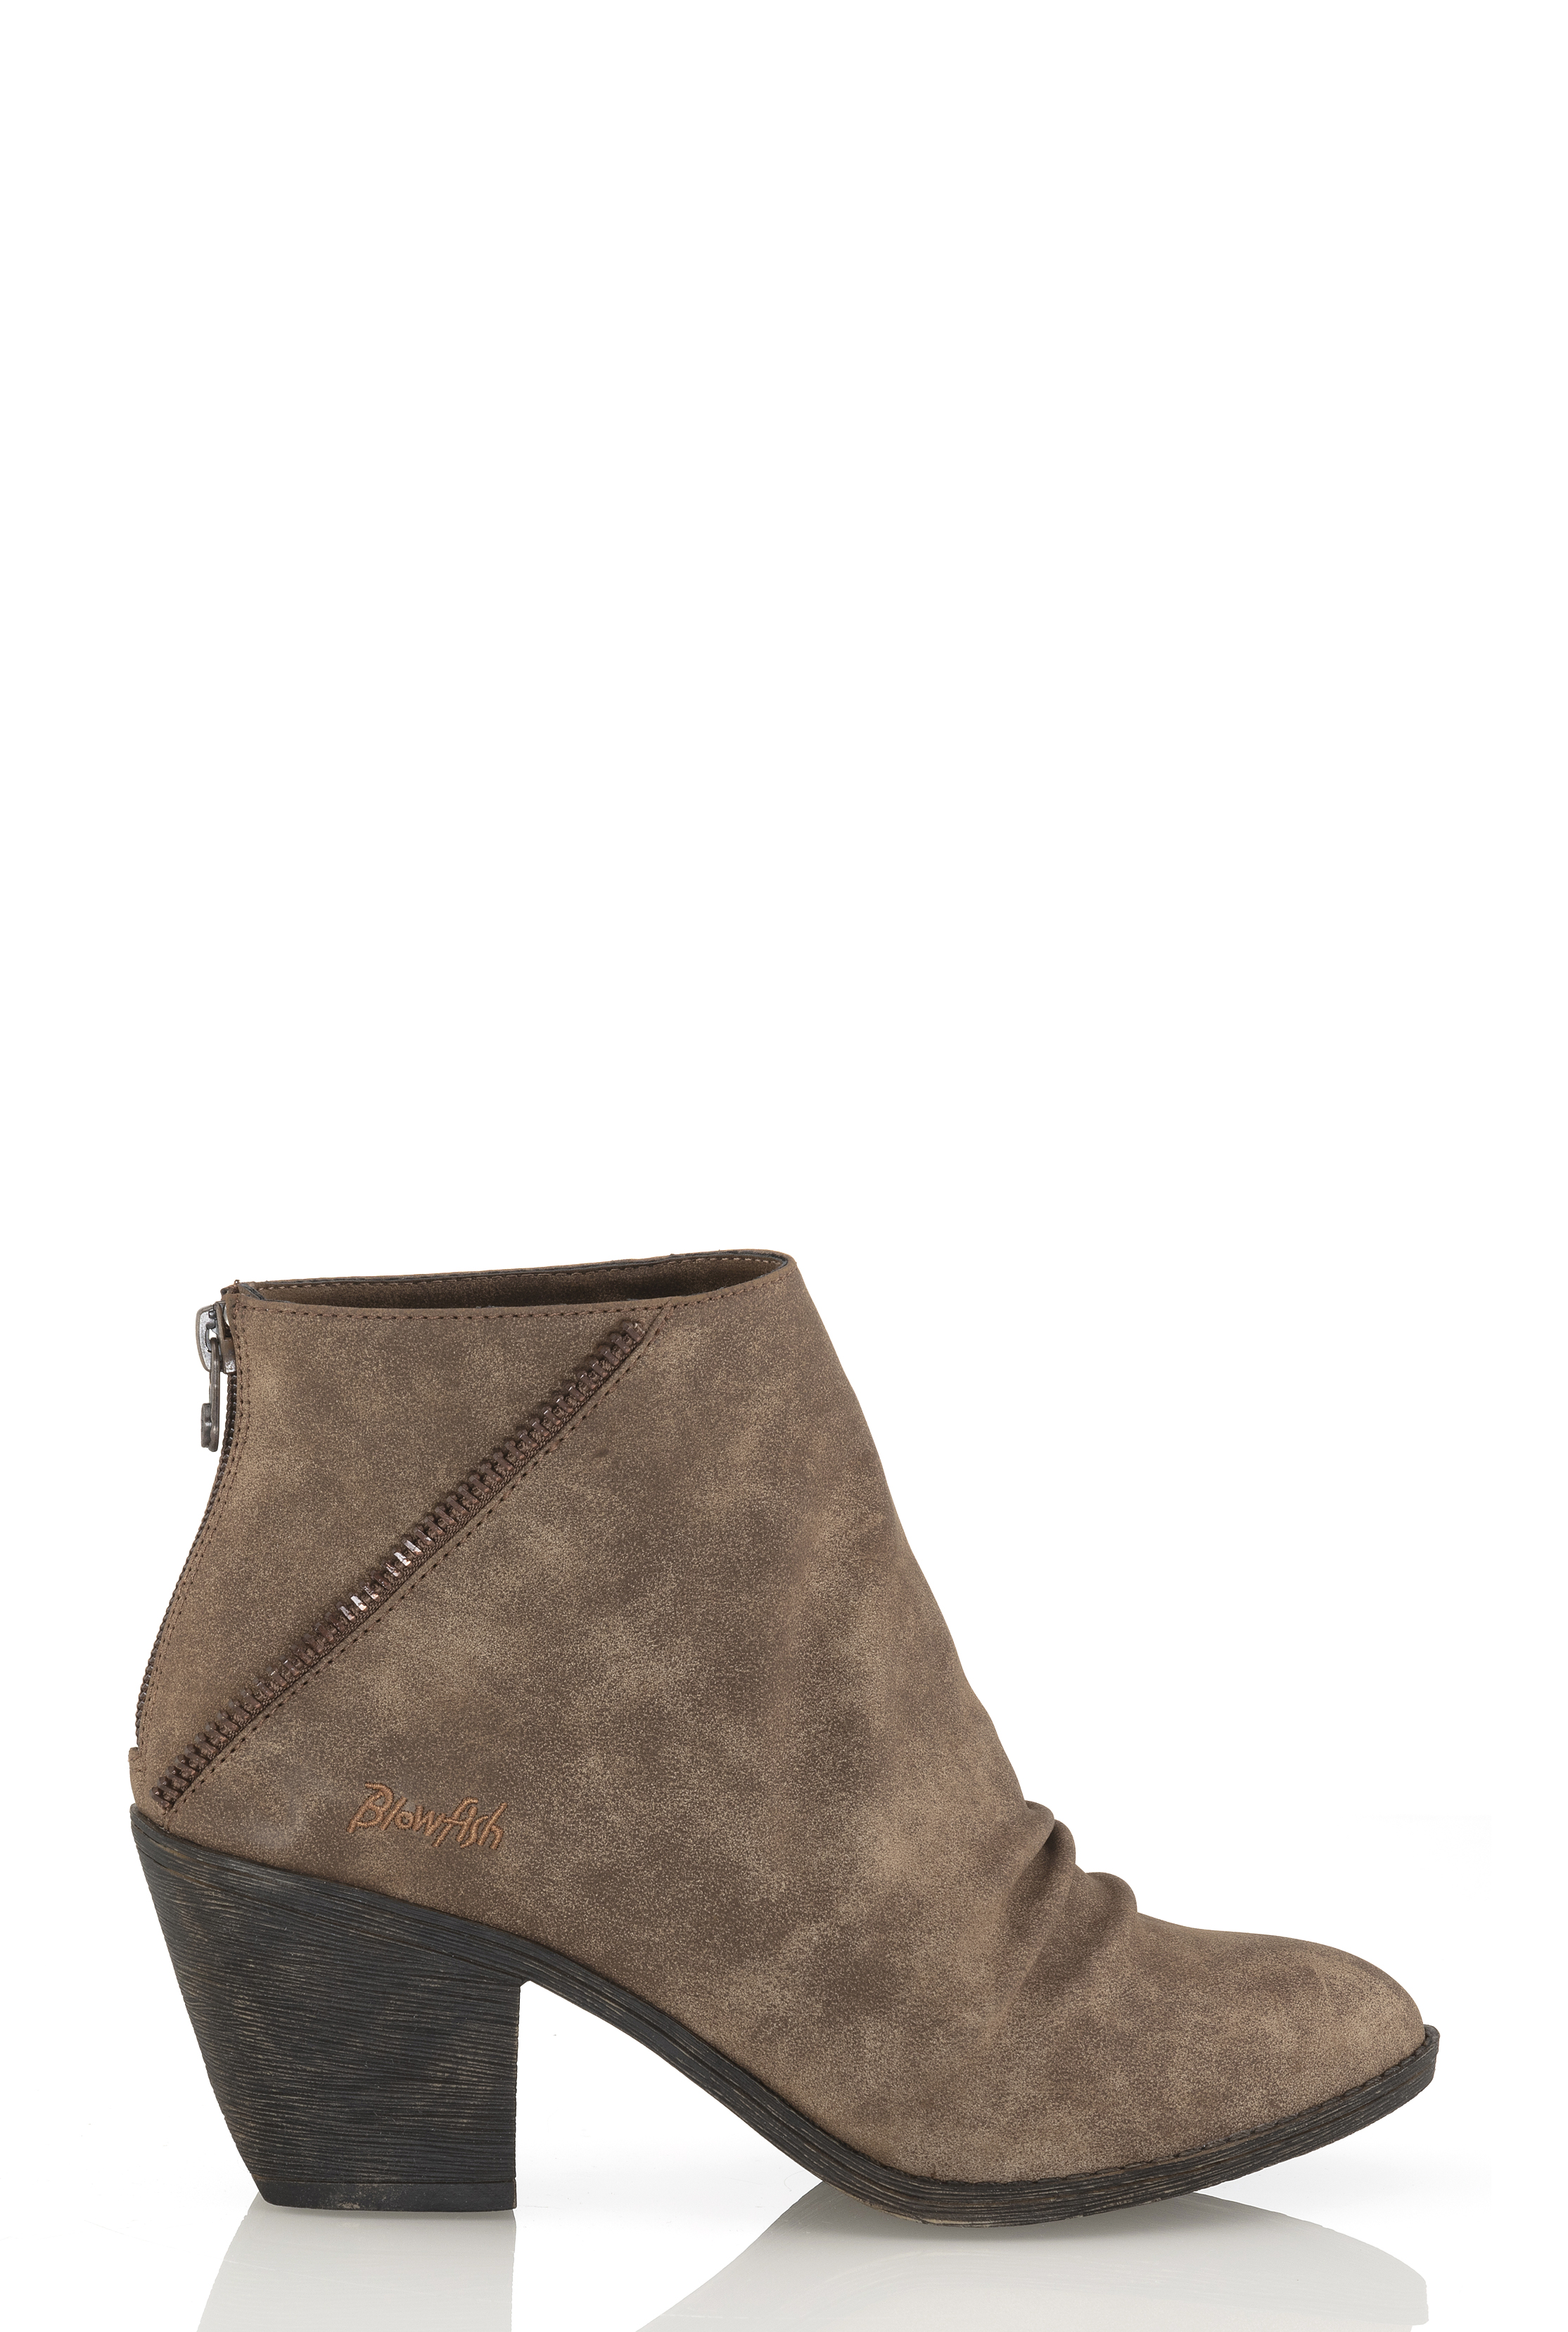 Blowfish Senaca Ankle Boot